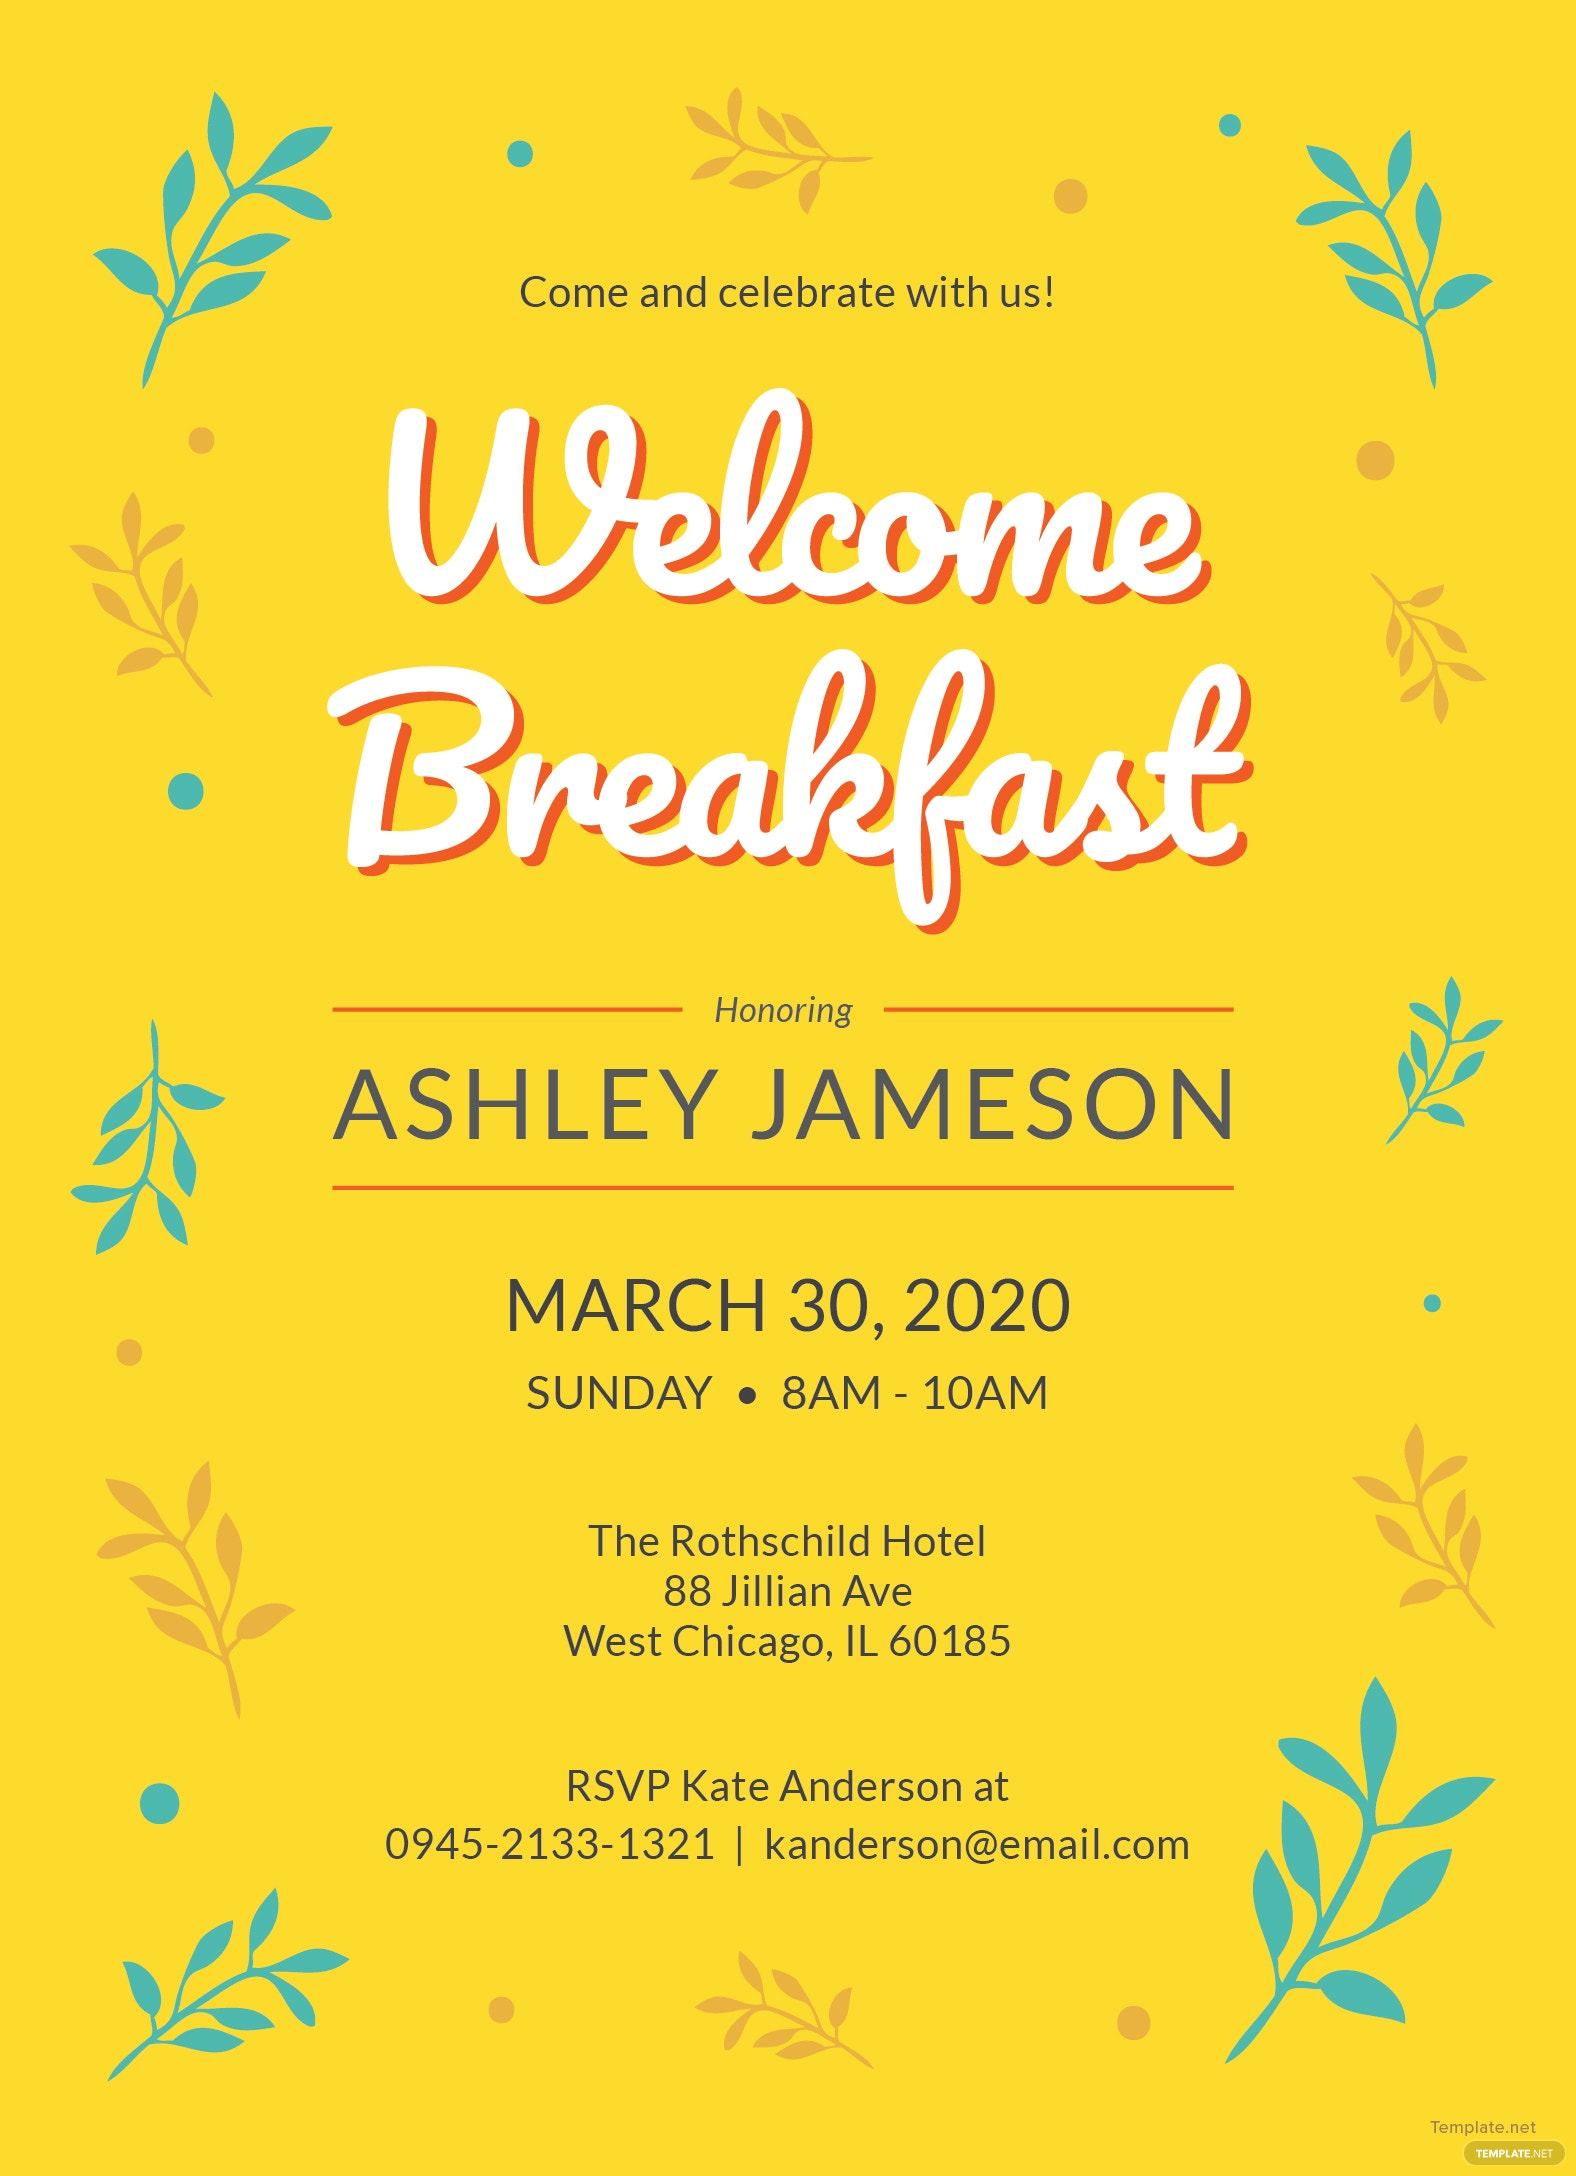 welcome breakfast invitation template in adobe photoshop